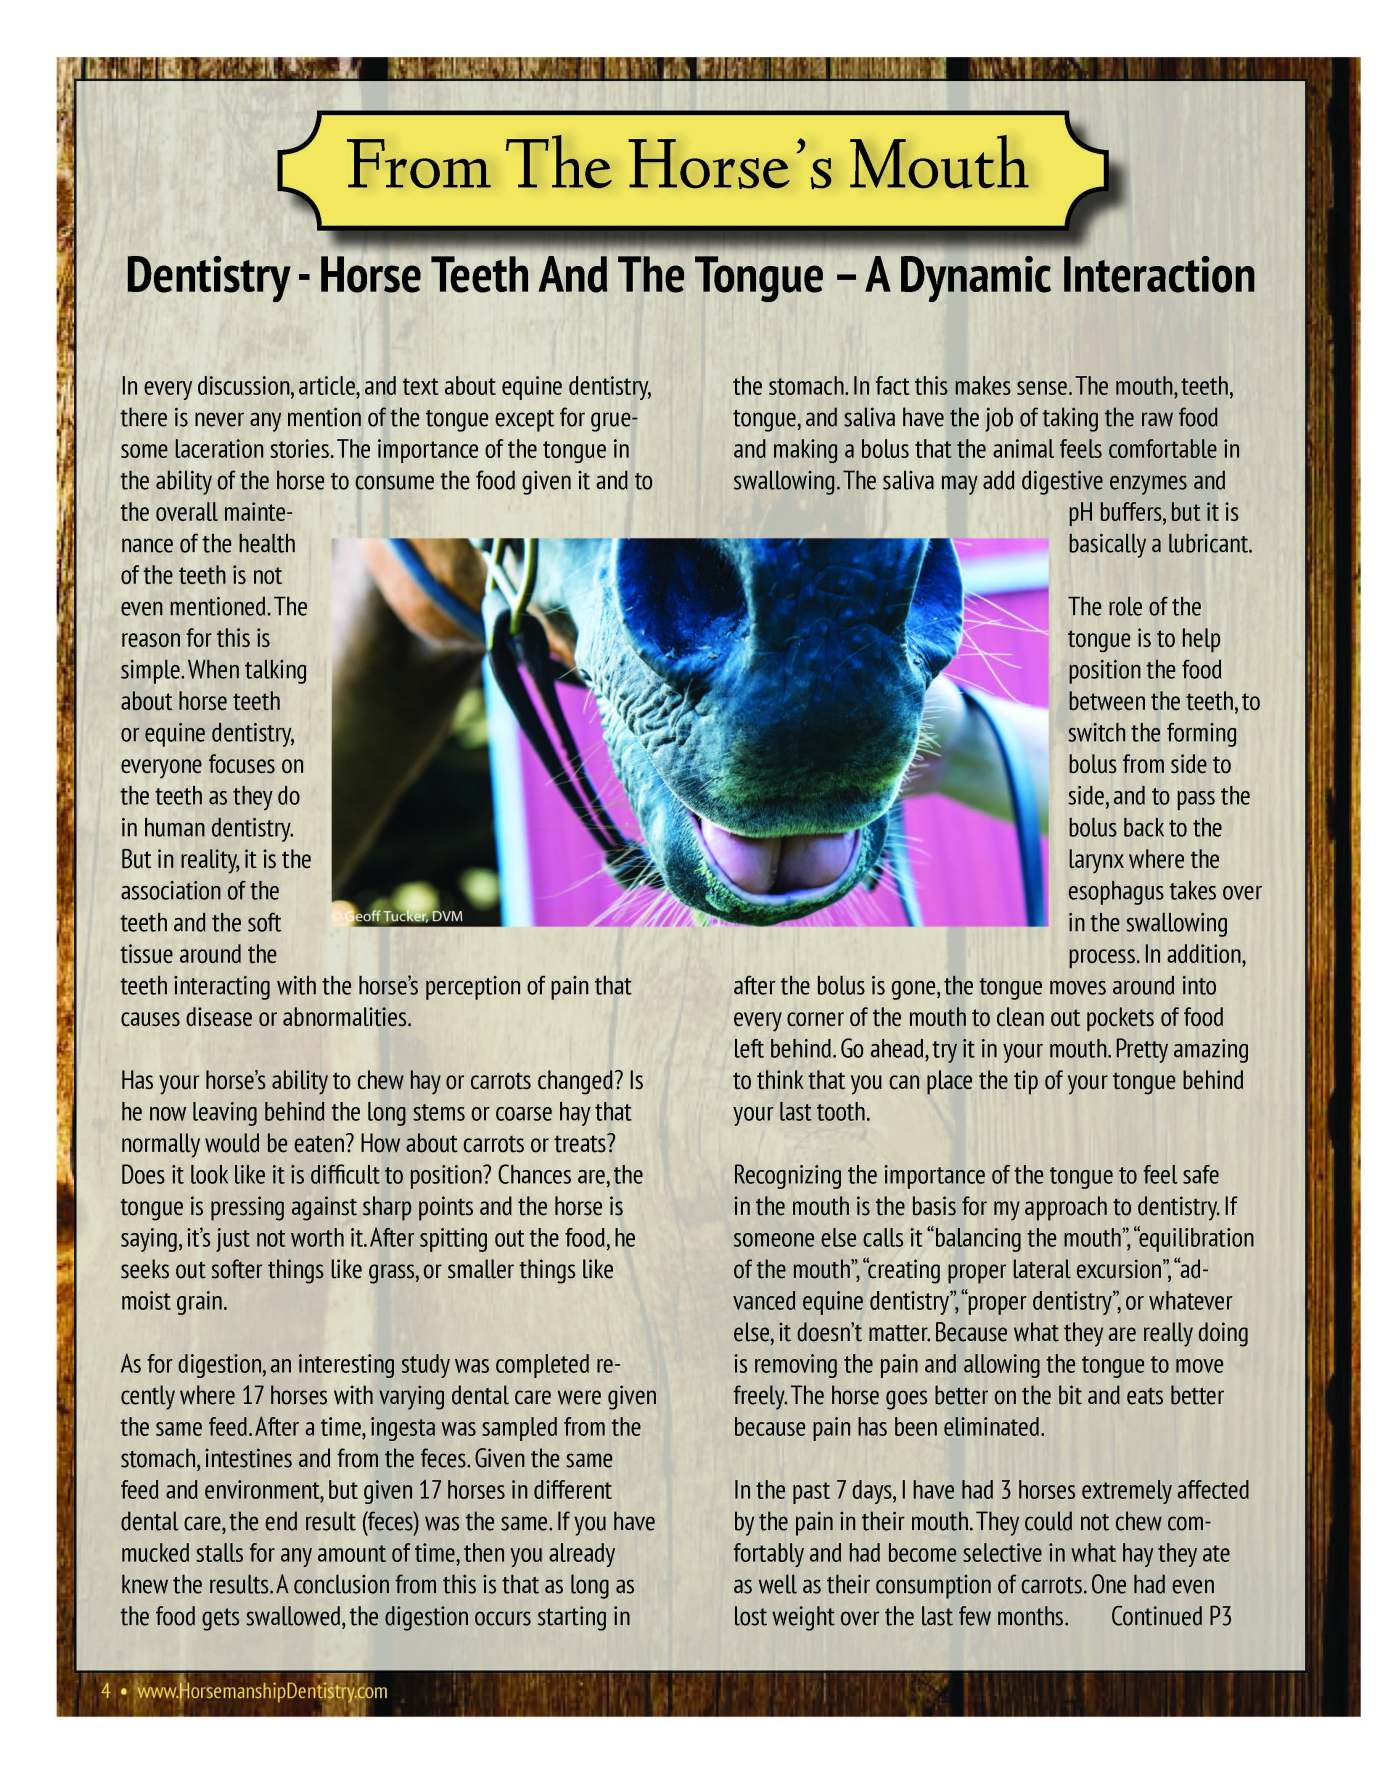 The Equine Practice Rounds™ Vol 1 Issue 2 page 4 of 4